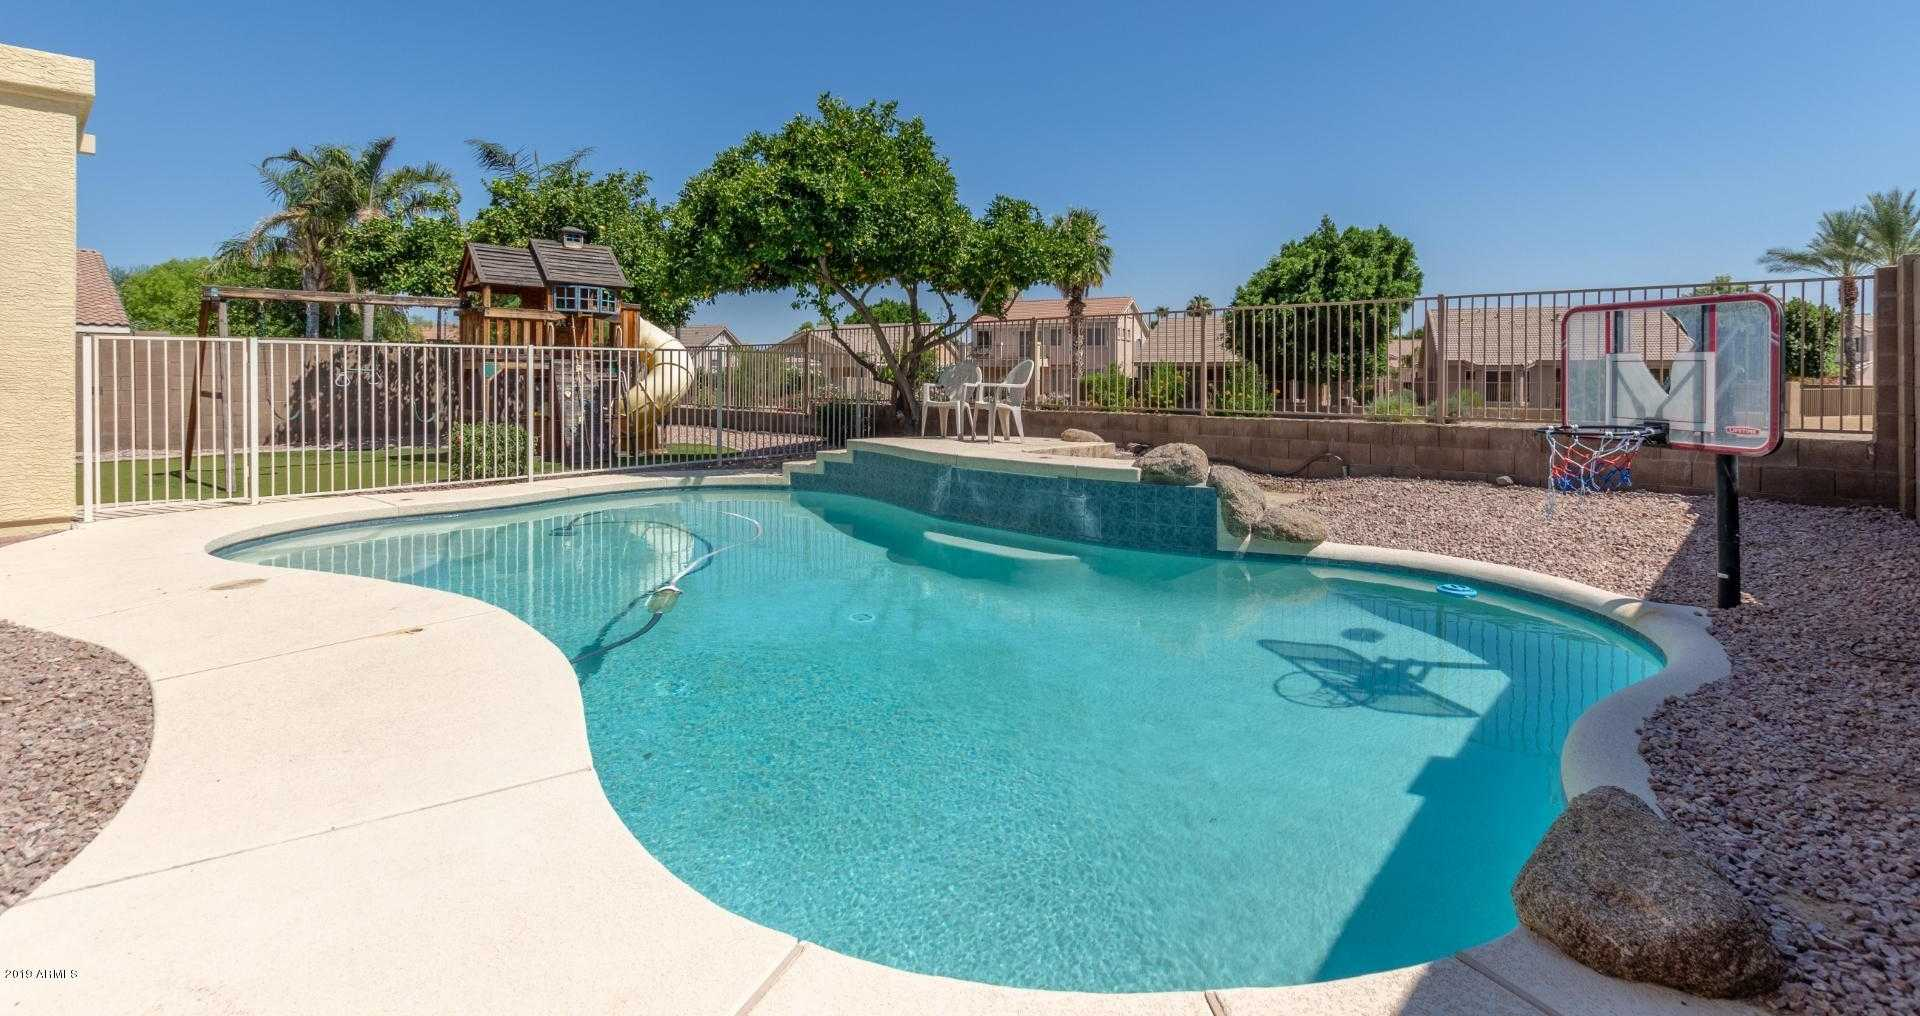 $400,000 - 5Br/3Ba - Home for Sale in Fulton Homes At Sierra Verde, Glendale